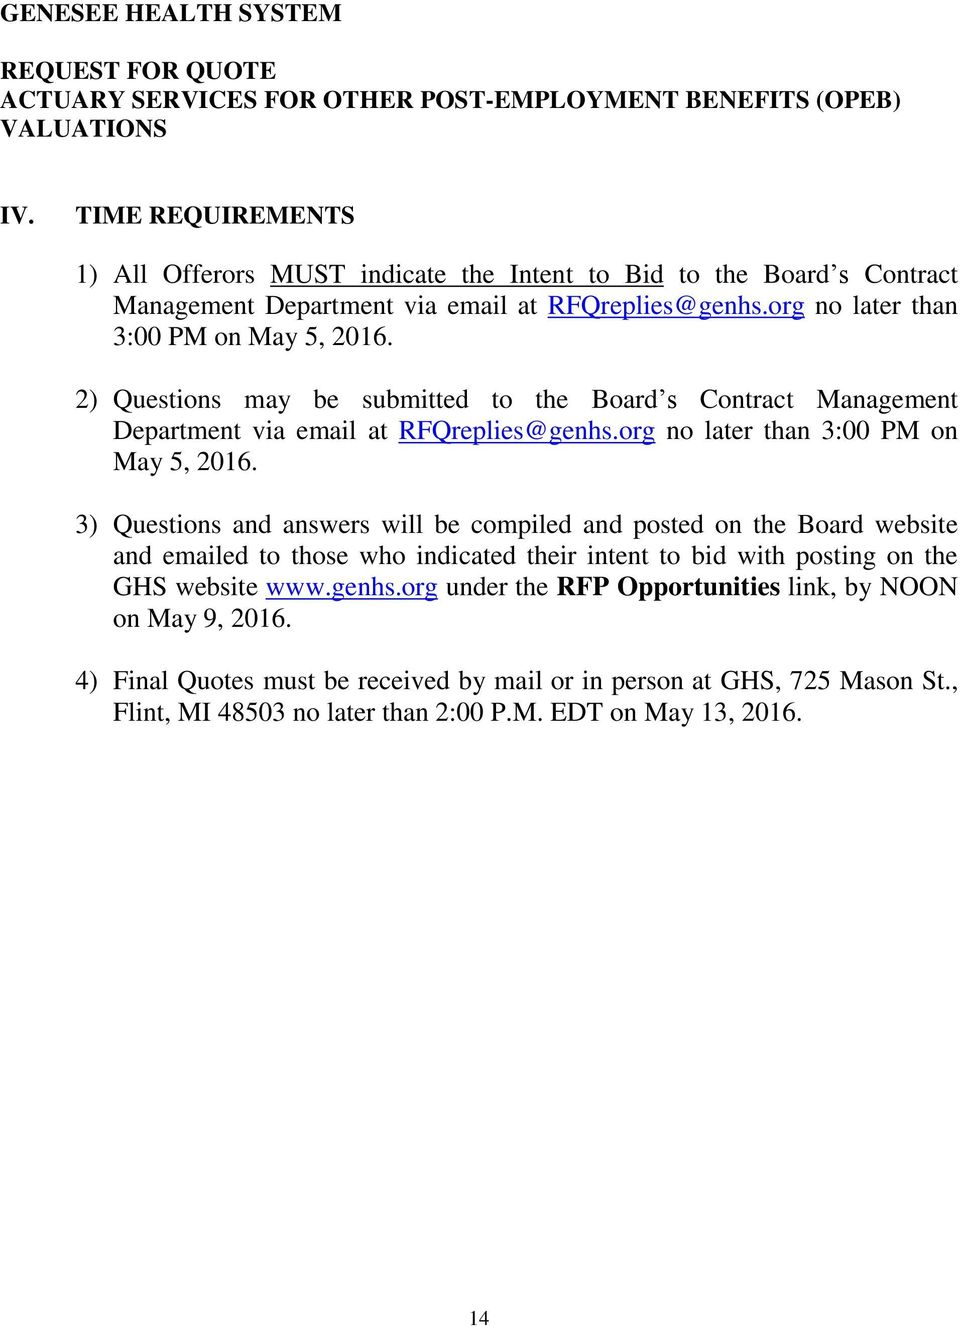 2) Questions may be submitted to the Board s Contract Management Department via email at RFQreplies@genhs.org no later than 3:00 PM on May 5, 2016.